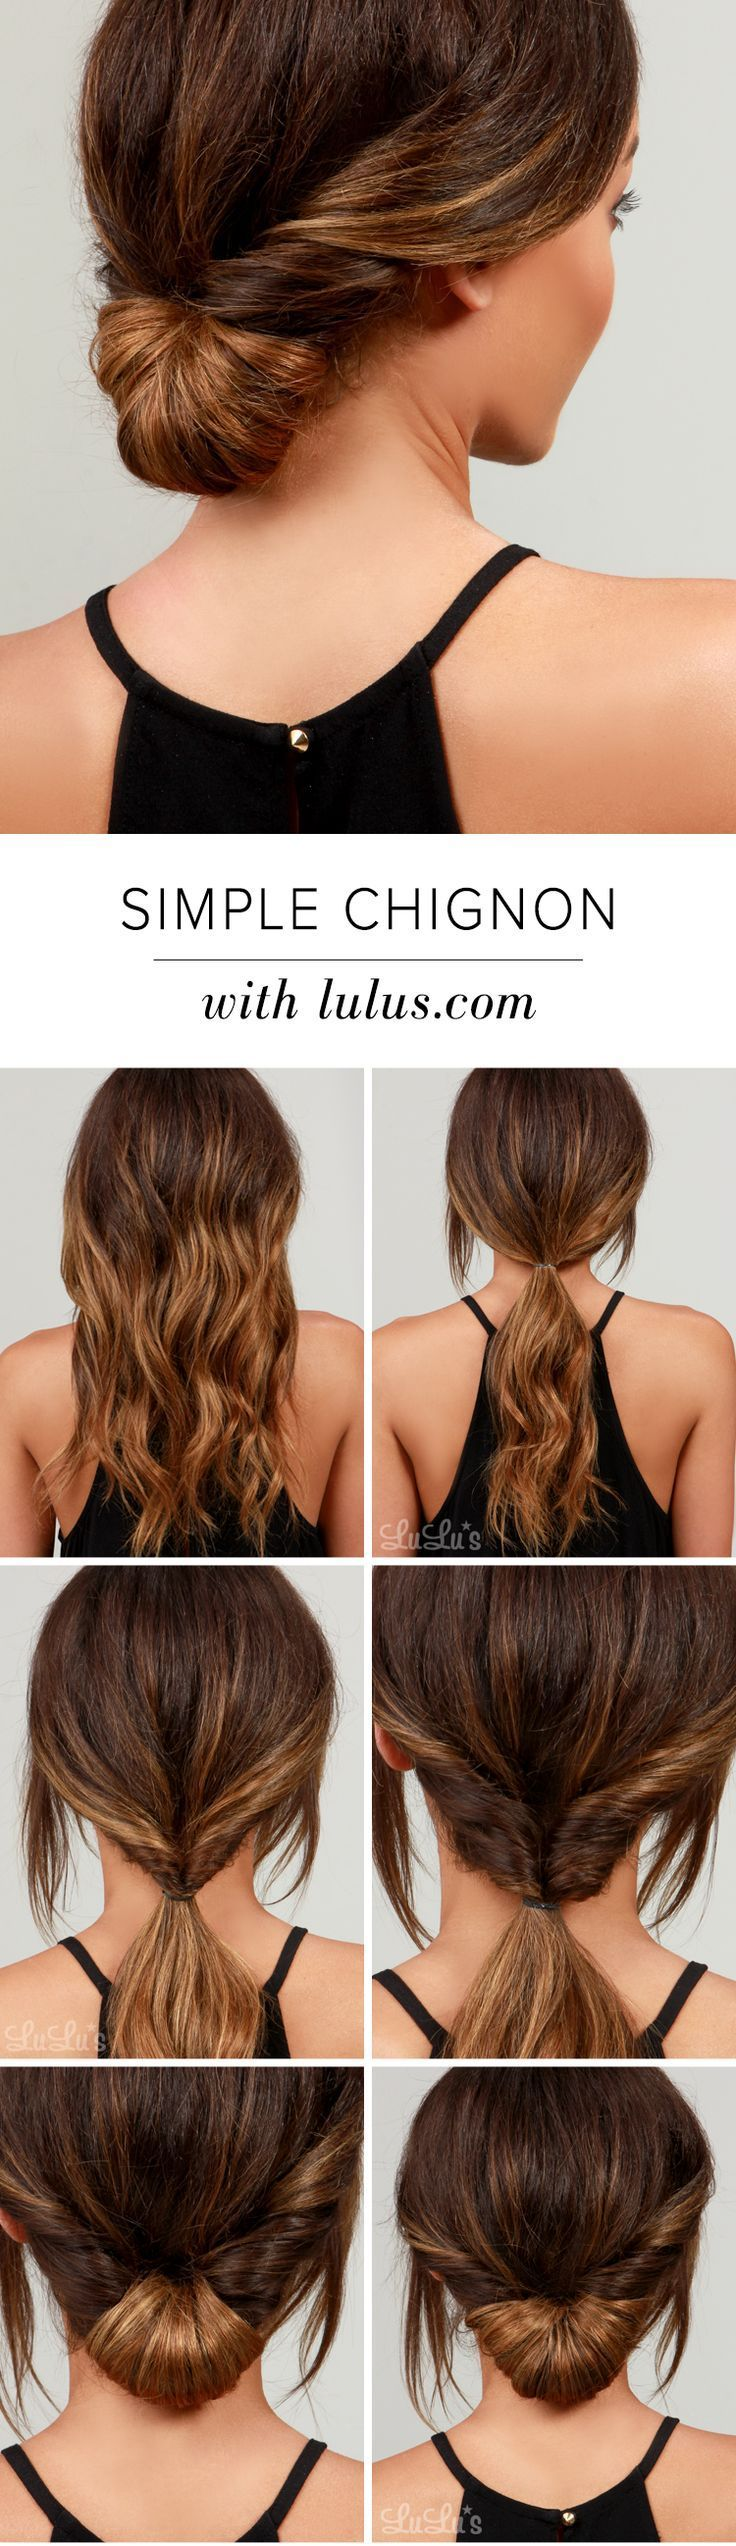 Lulus howto simple chignon hair tutorial chignon hair easy updo